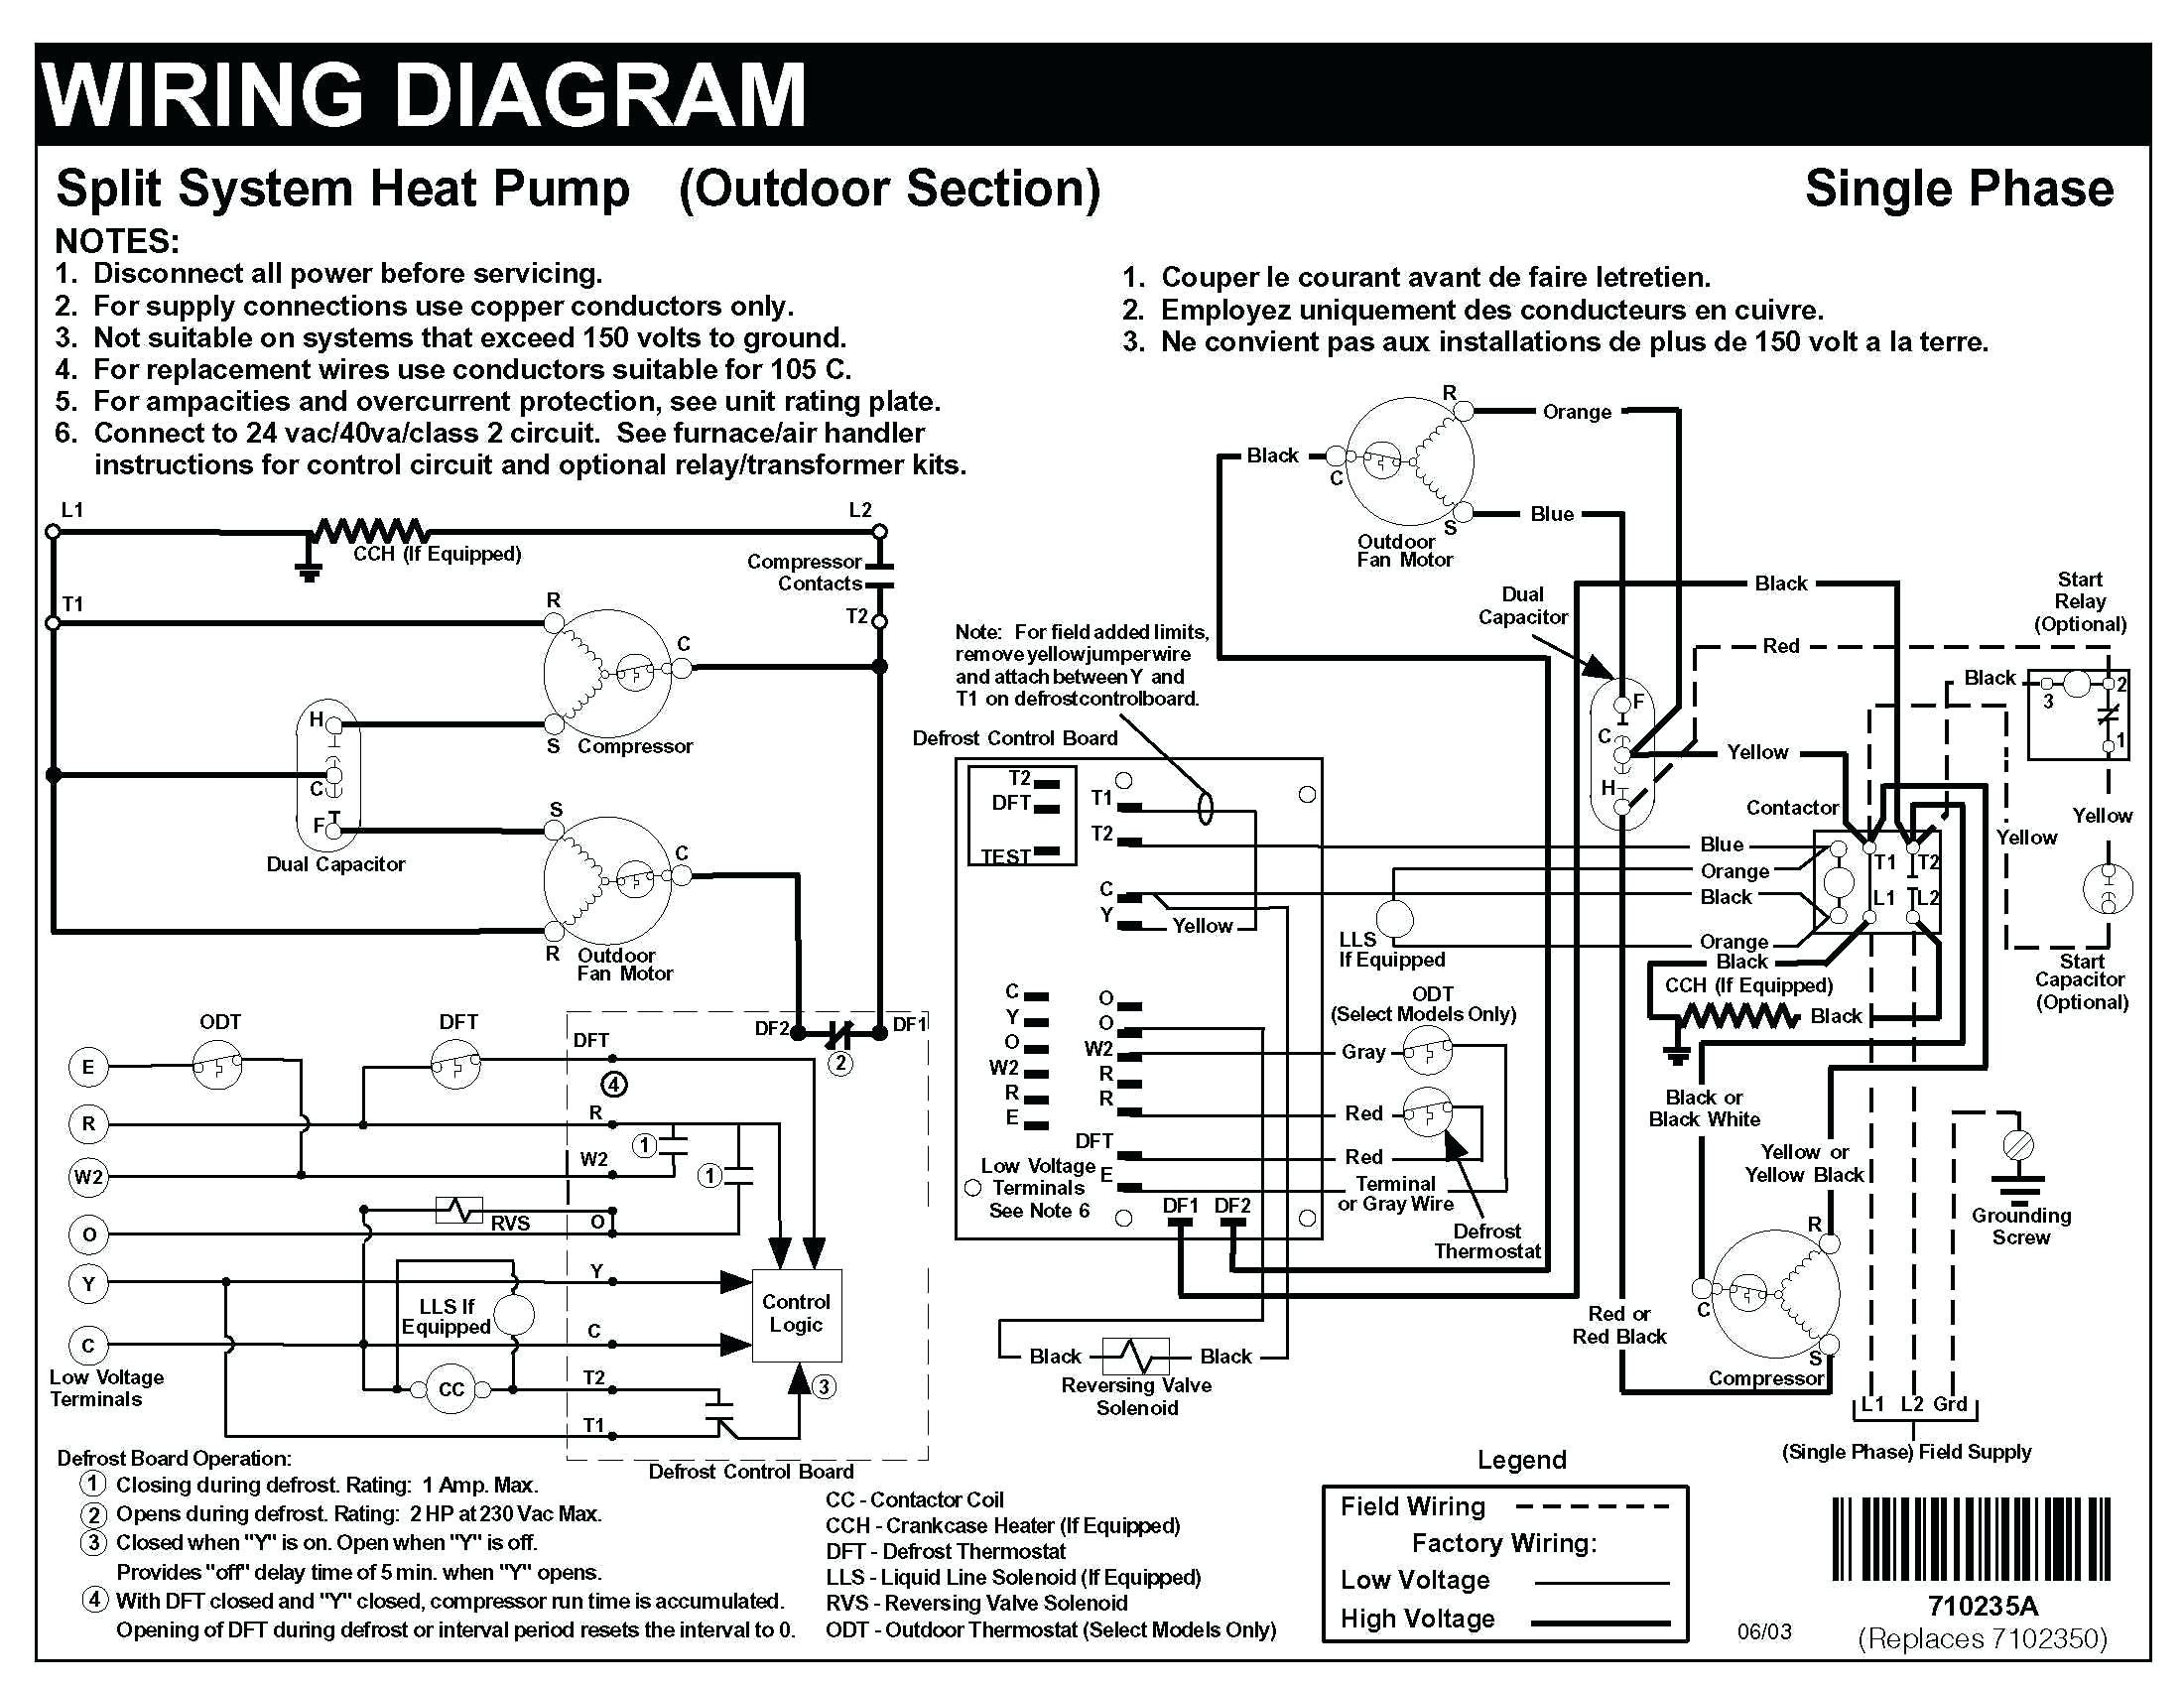 Gas Furnace Blower Relay Wiring Diagram Jeep Fuse Box Cover Begeboy Wiring Diagram Source